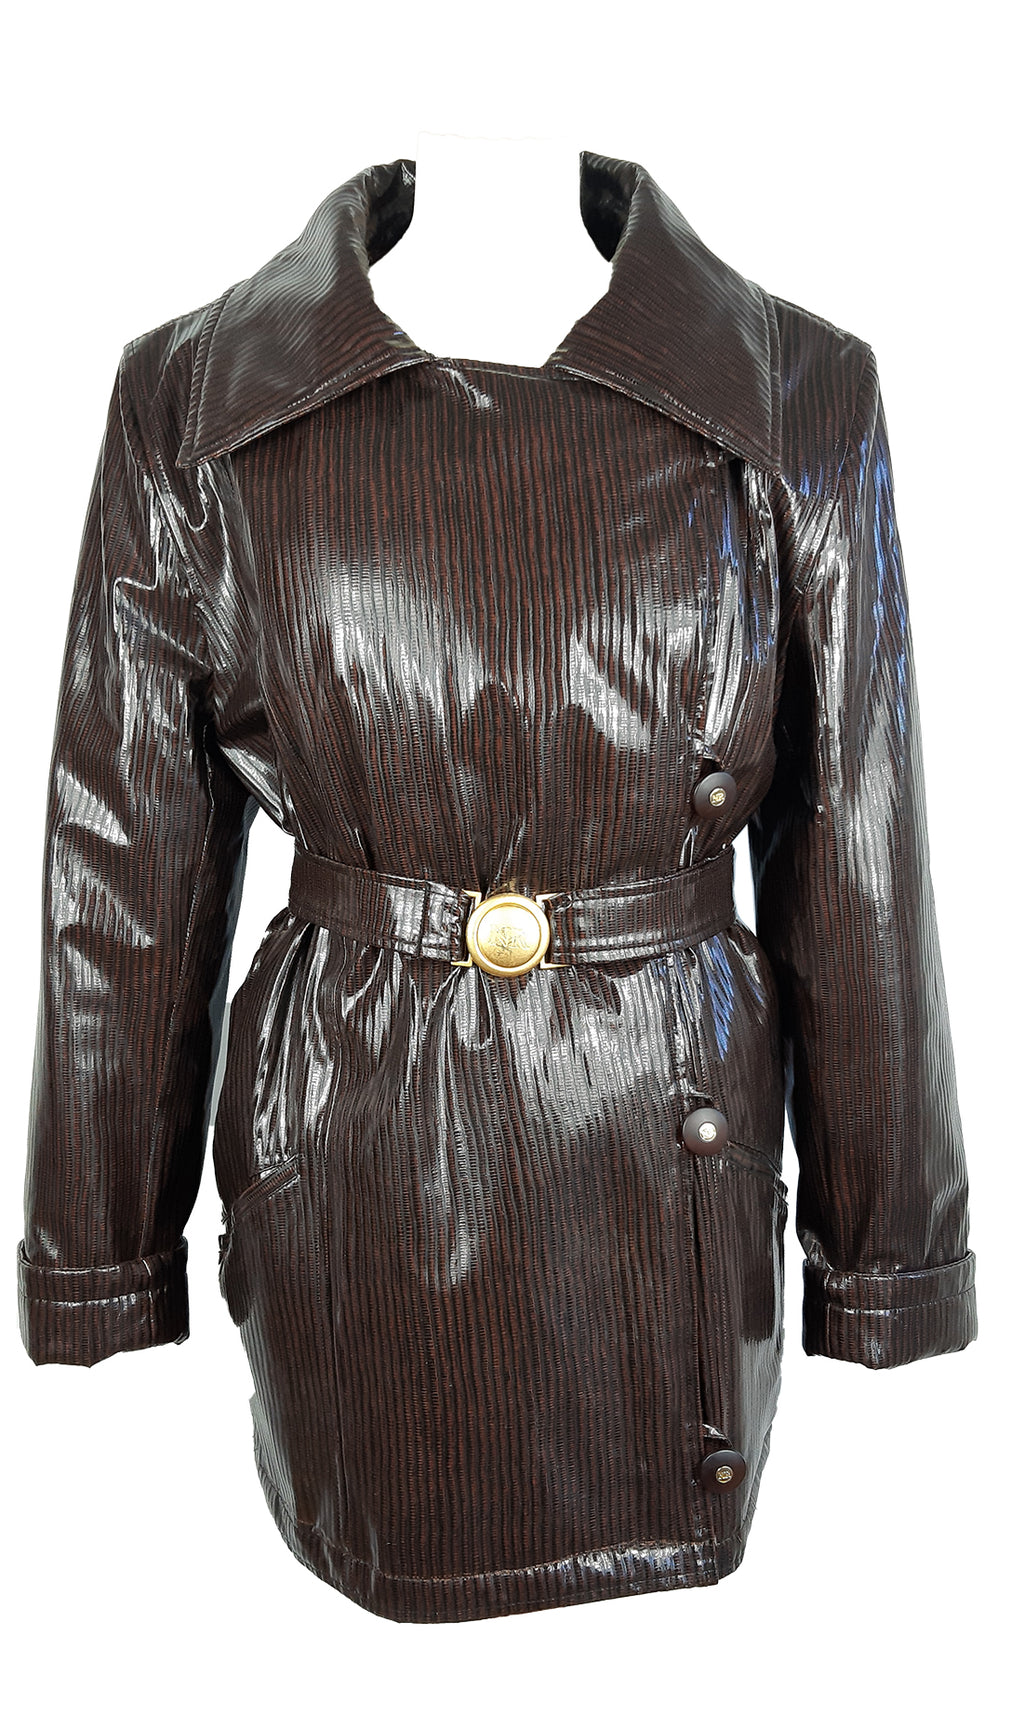 Nina Ricci Paris Patent Leather Coat Size 42 (EU)